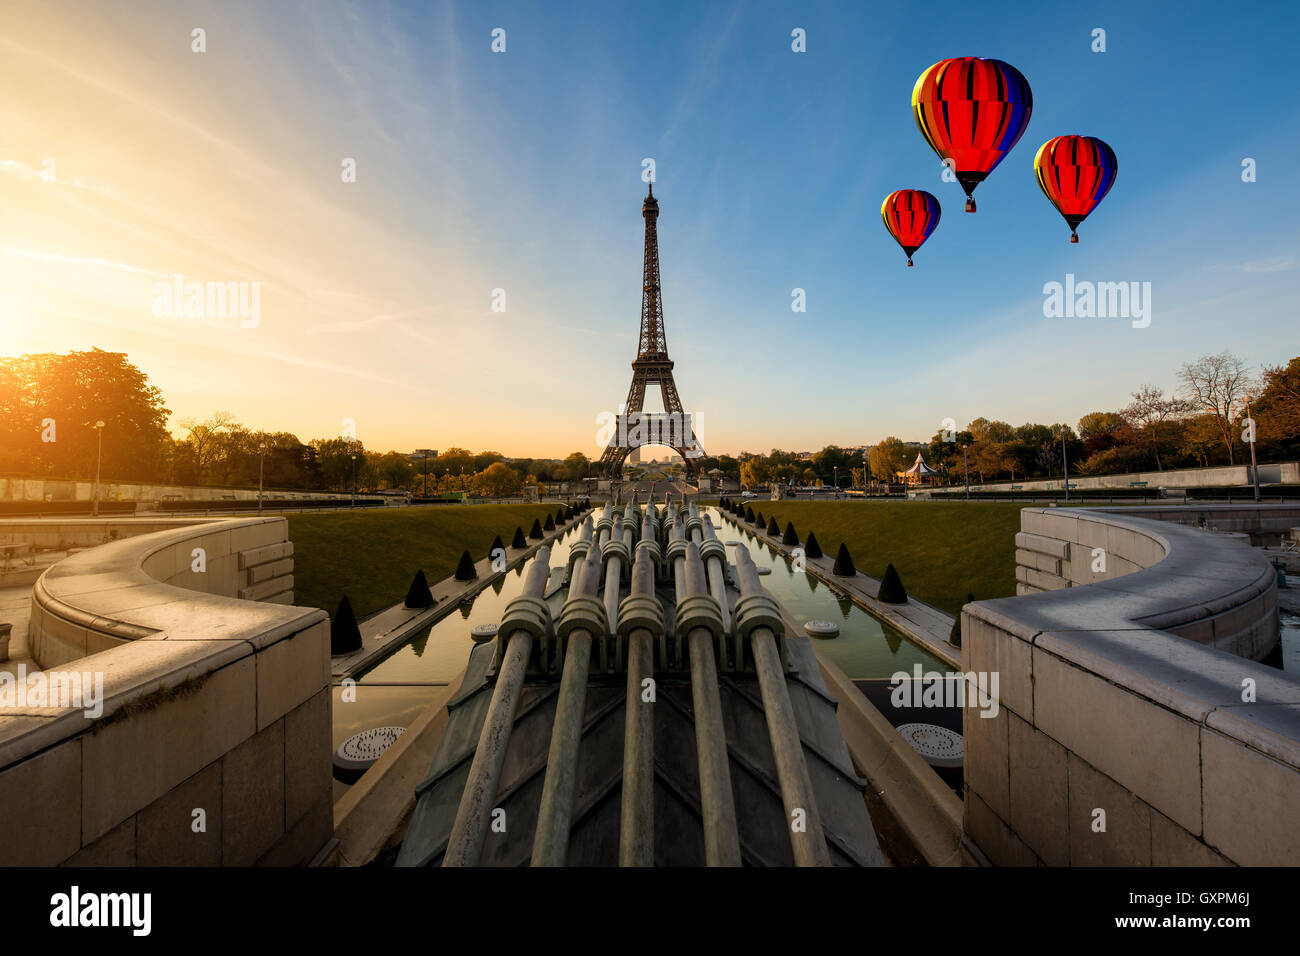 Hot air balloon with sunrise in Eiffel Tower in Paris, France ...